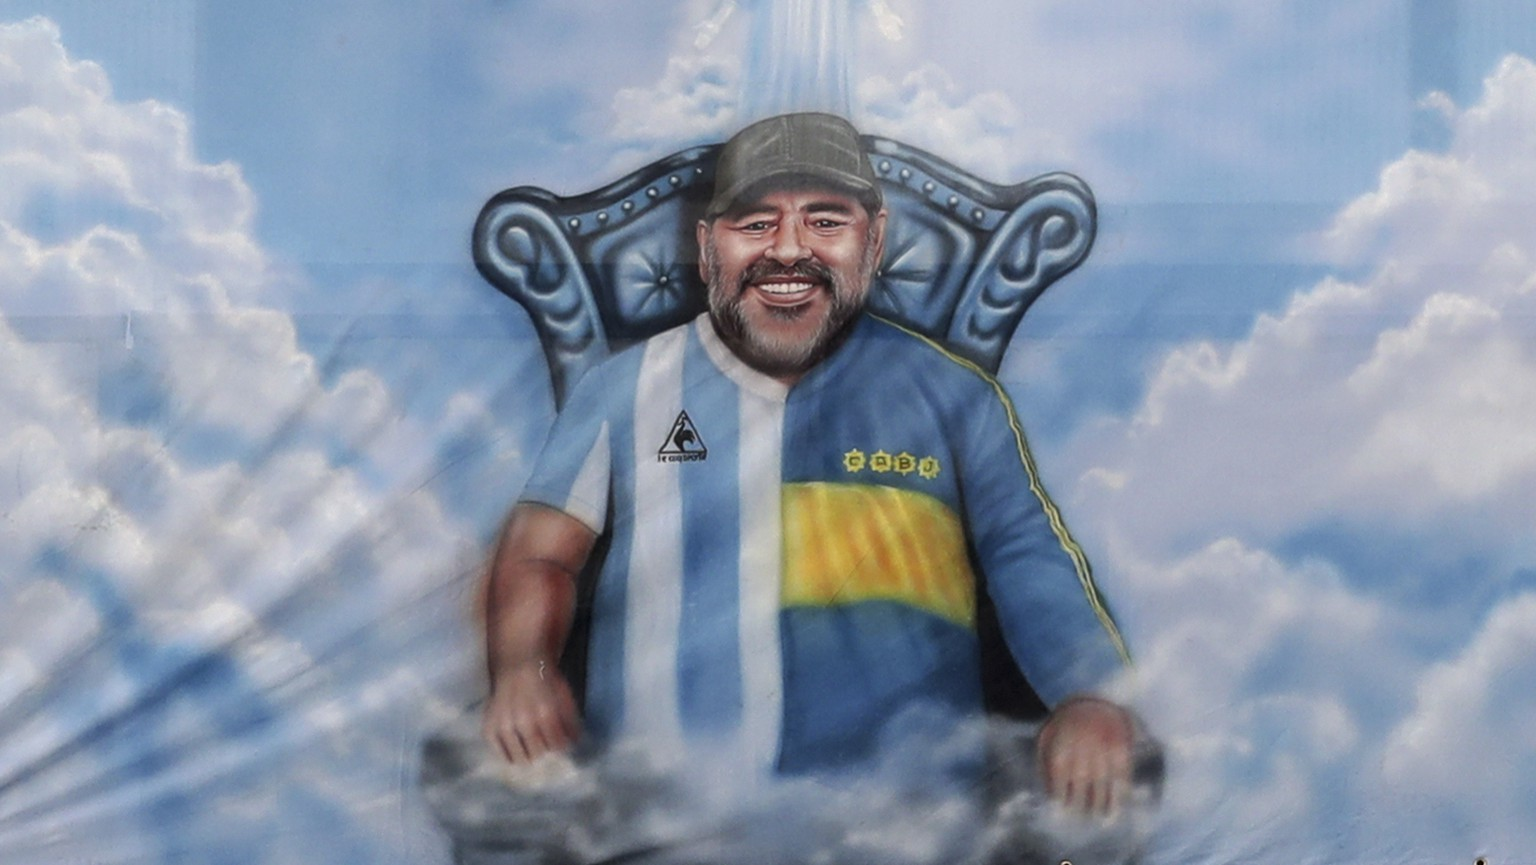 A flag with the image of Diego Maradona wearing the Boca Juniors and Argentine T-shirt hangs from the stands during a local league soccer match between of Boca Juniors and of River Plate at the Bombonera stadium in Buenos Aires, Argentina, Sunday, March 14, 2021.(Alejandro Pagni/Pool via AP)